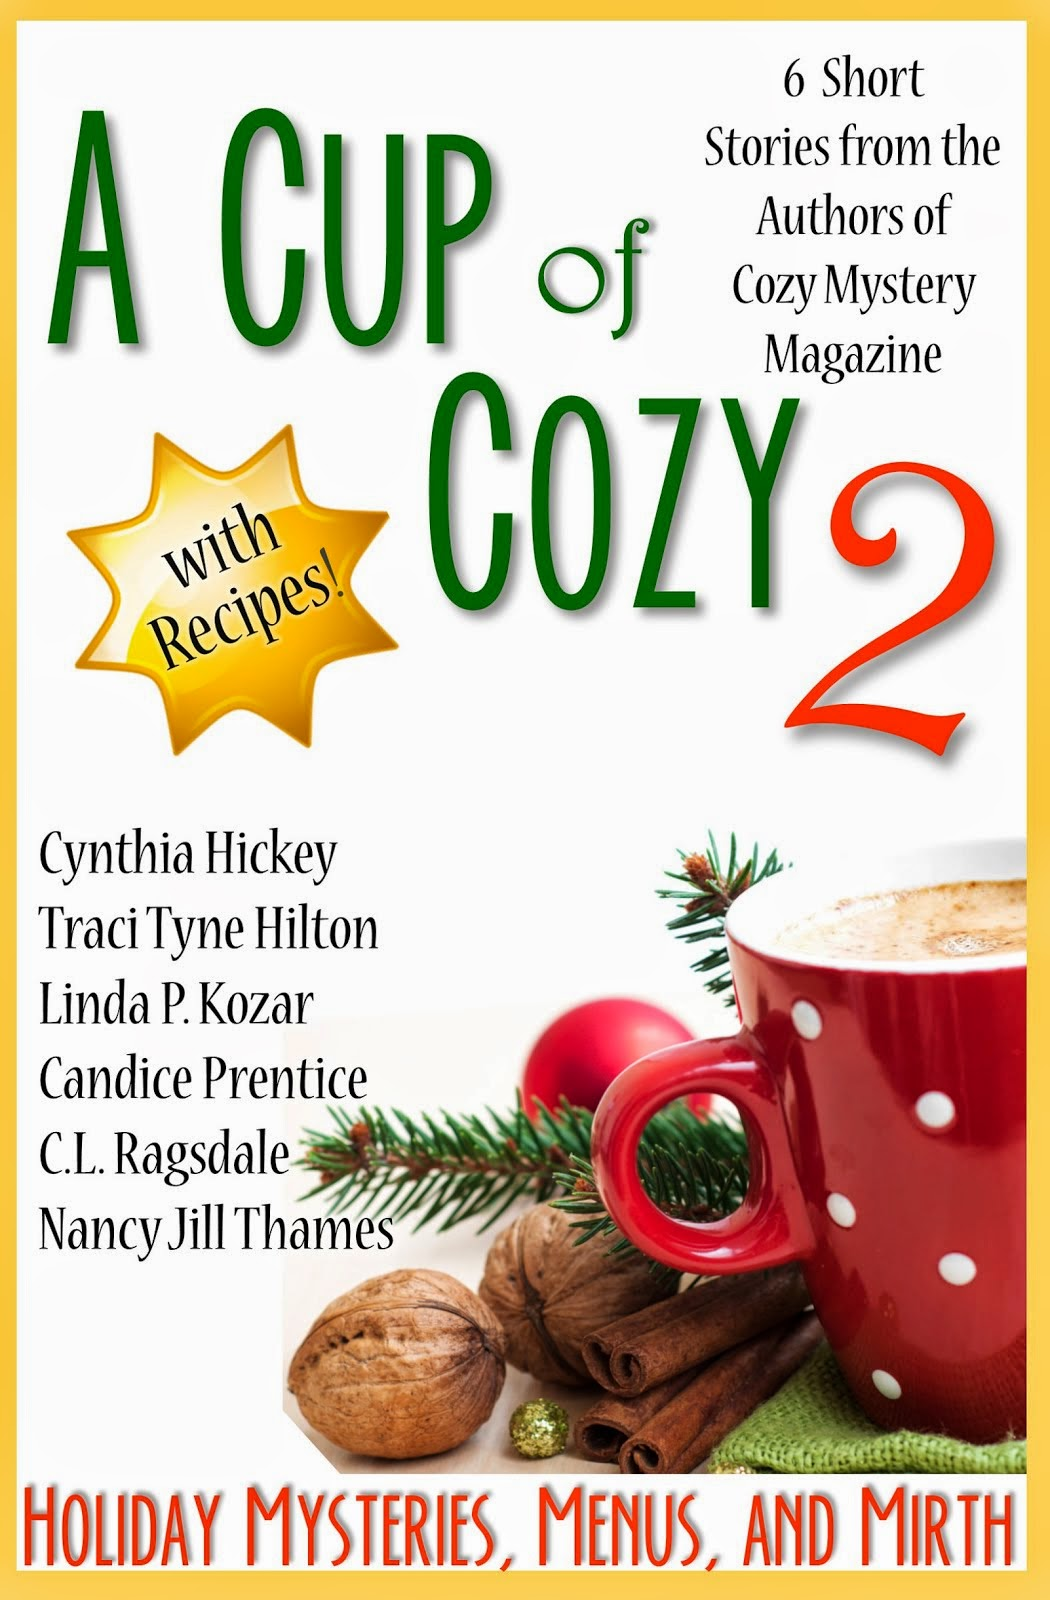 Our New Holiday Anthology!